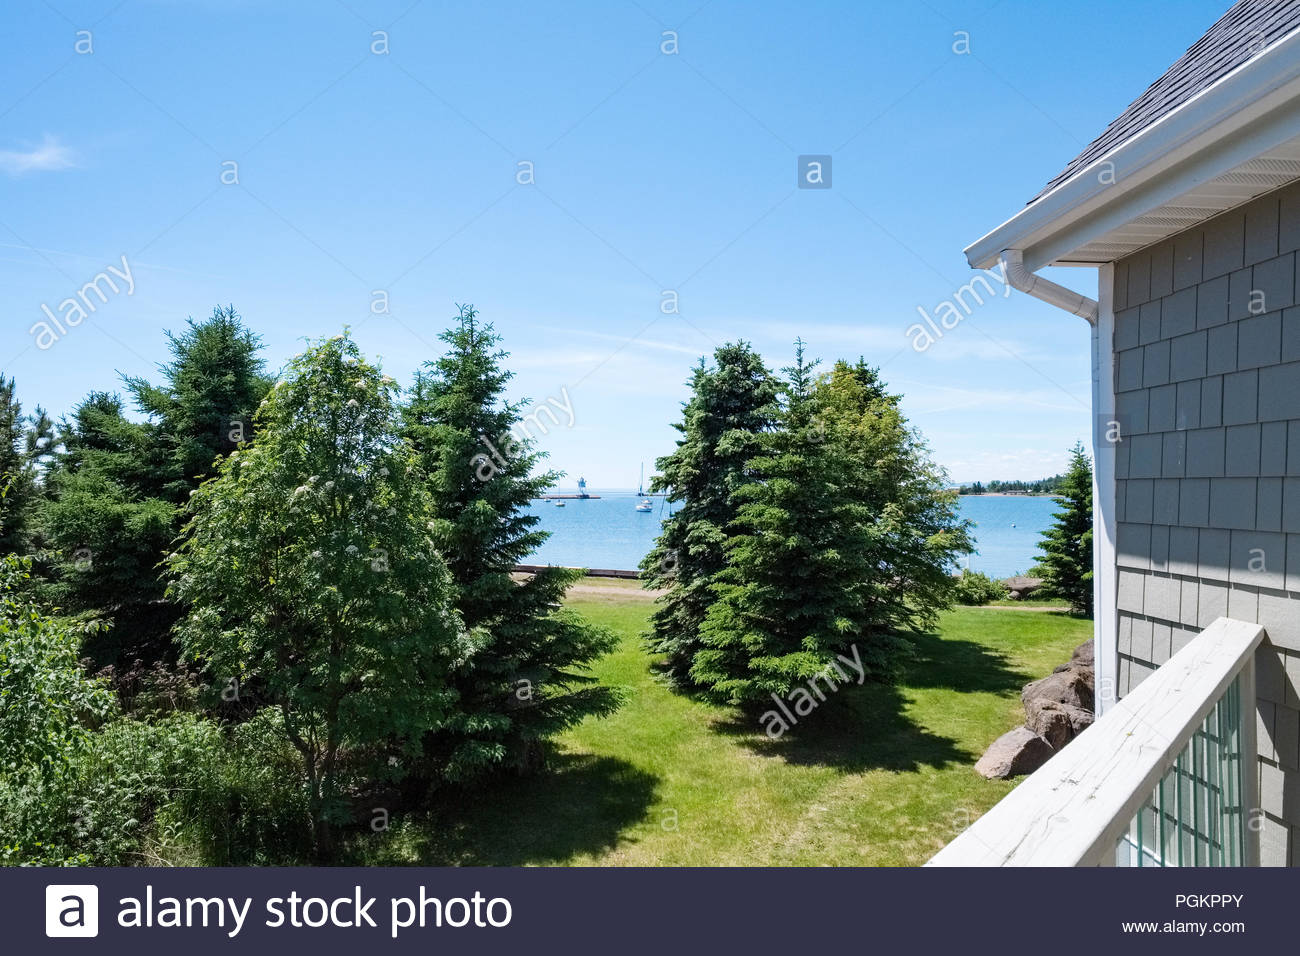 View of Grand Marais harbor from the balcony of a Cobblestone Cove condominium - Stock Image